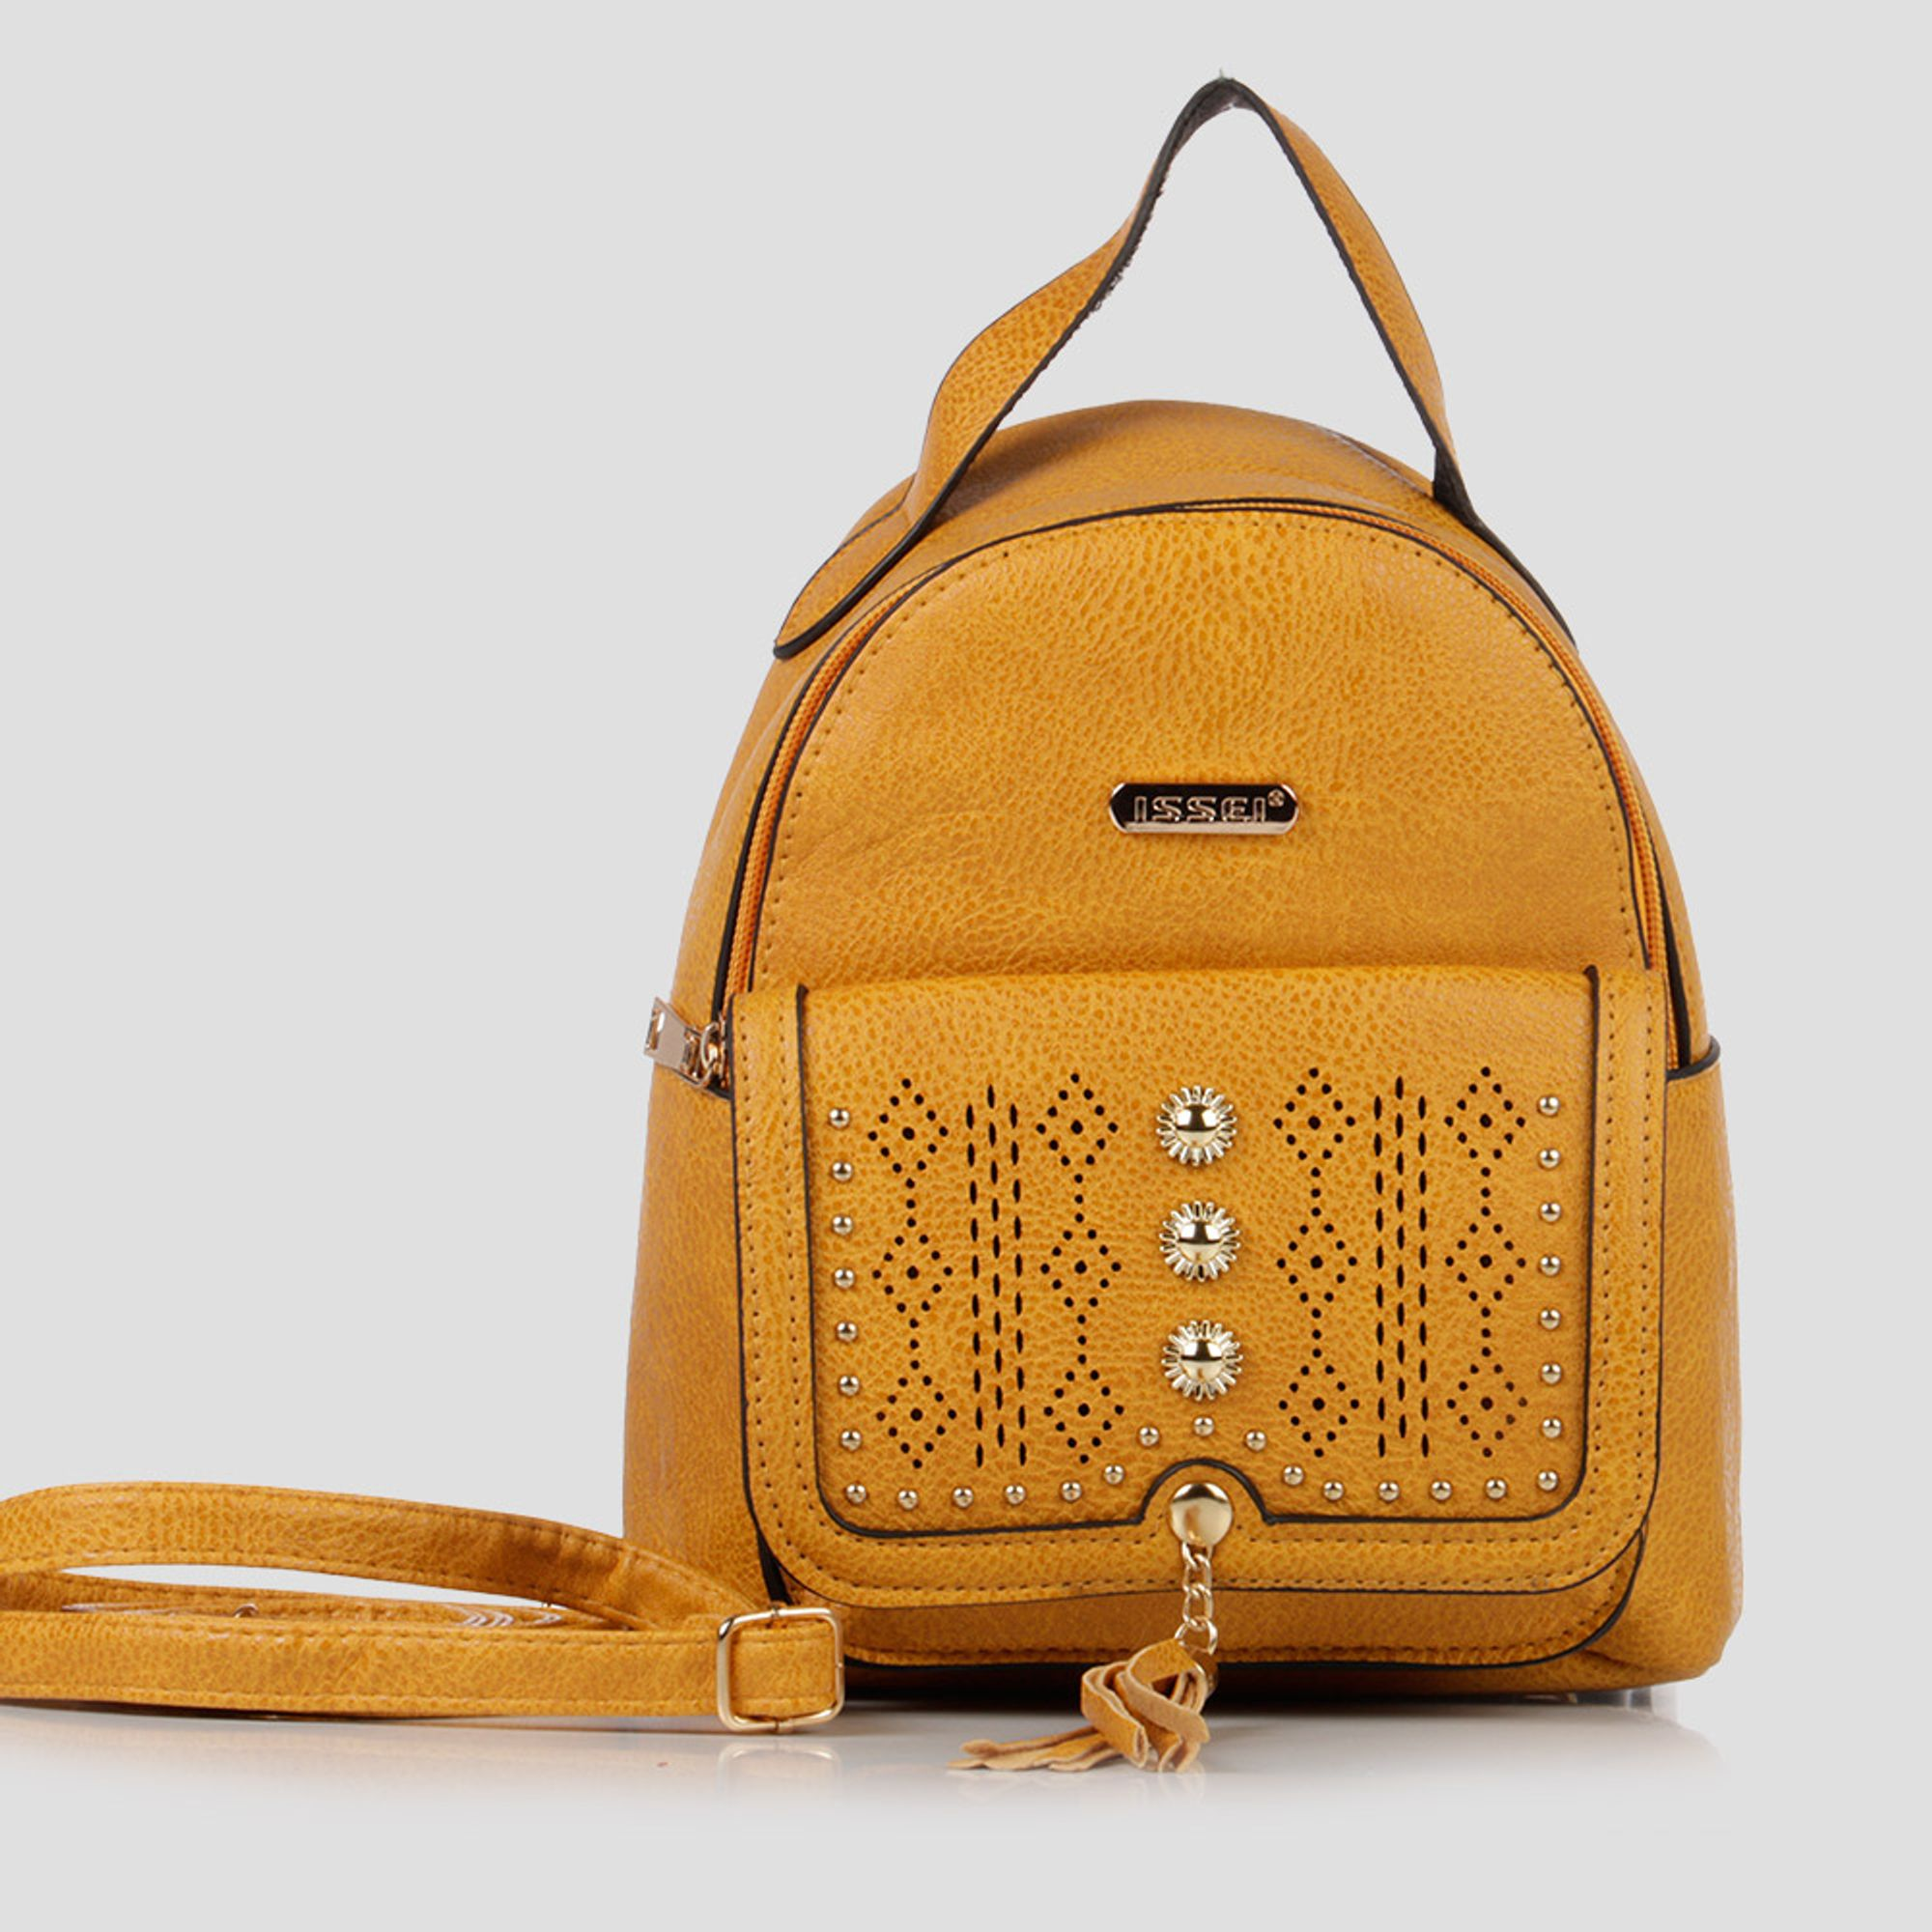 MORRAL-ISSEI-MUJER-734-MOSTAZA